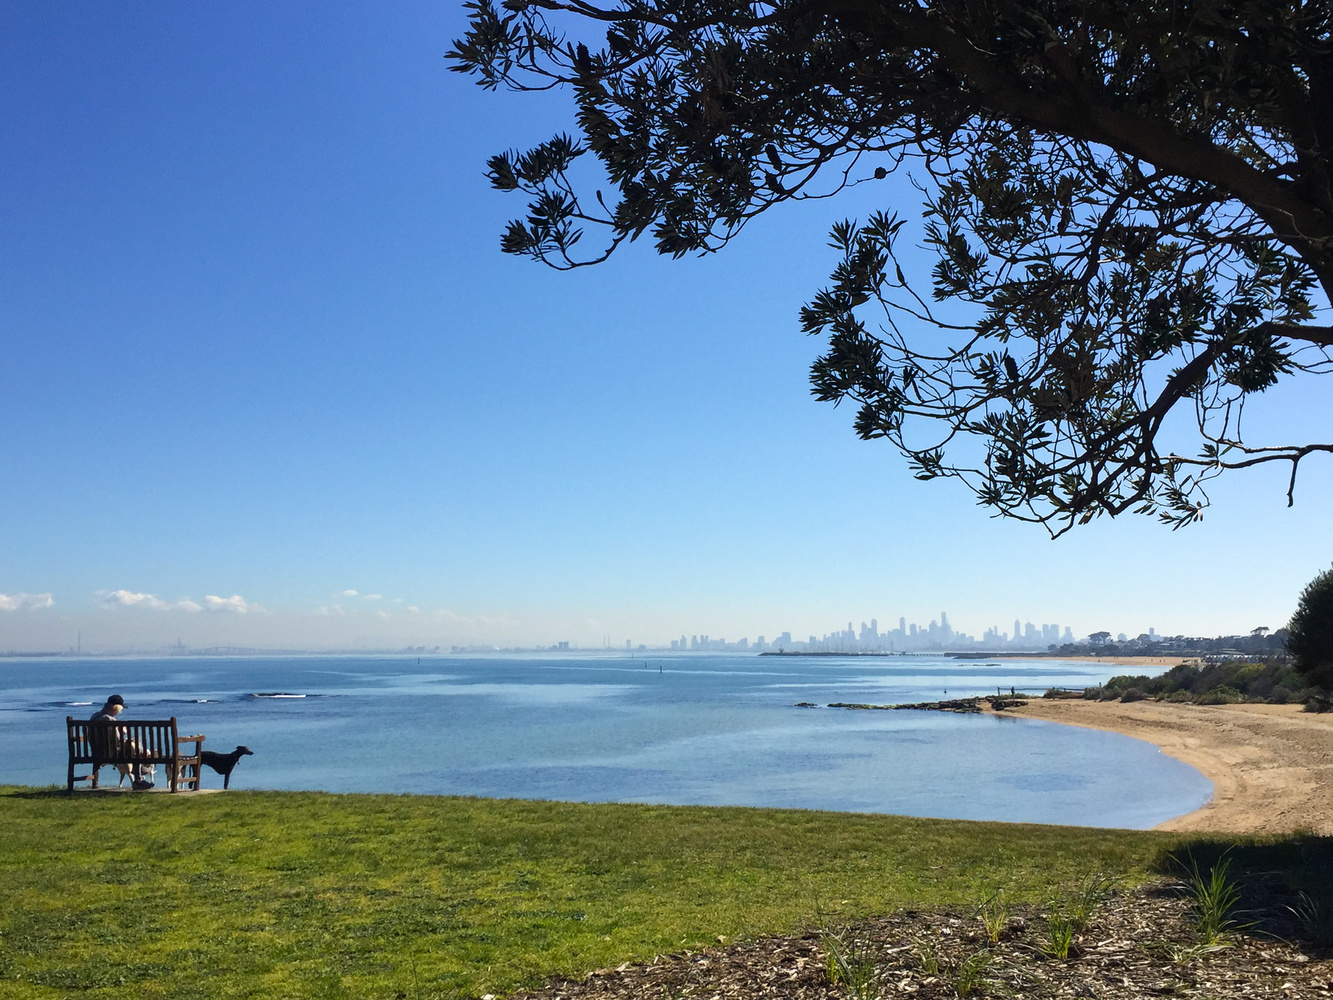 Melbourne on a glorious spring day by Marian Pollock